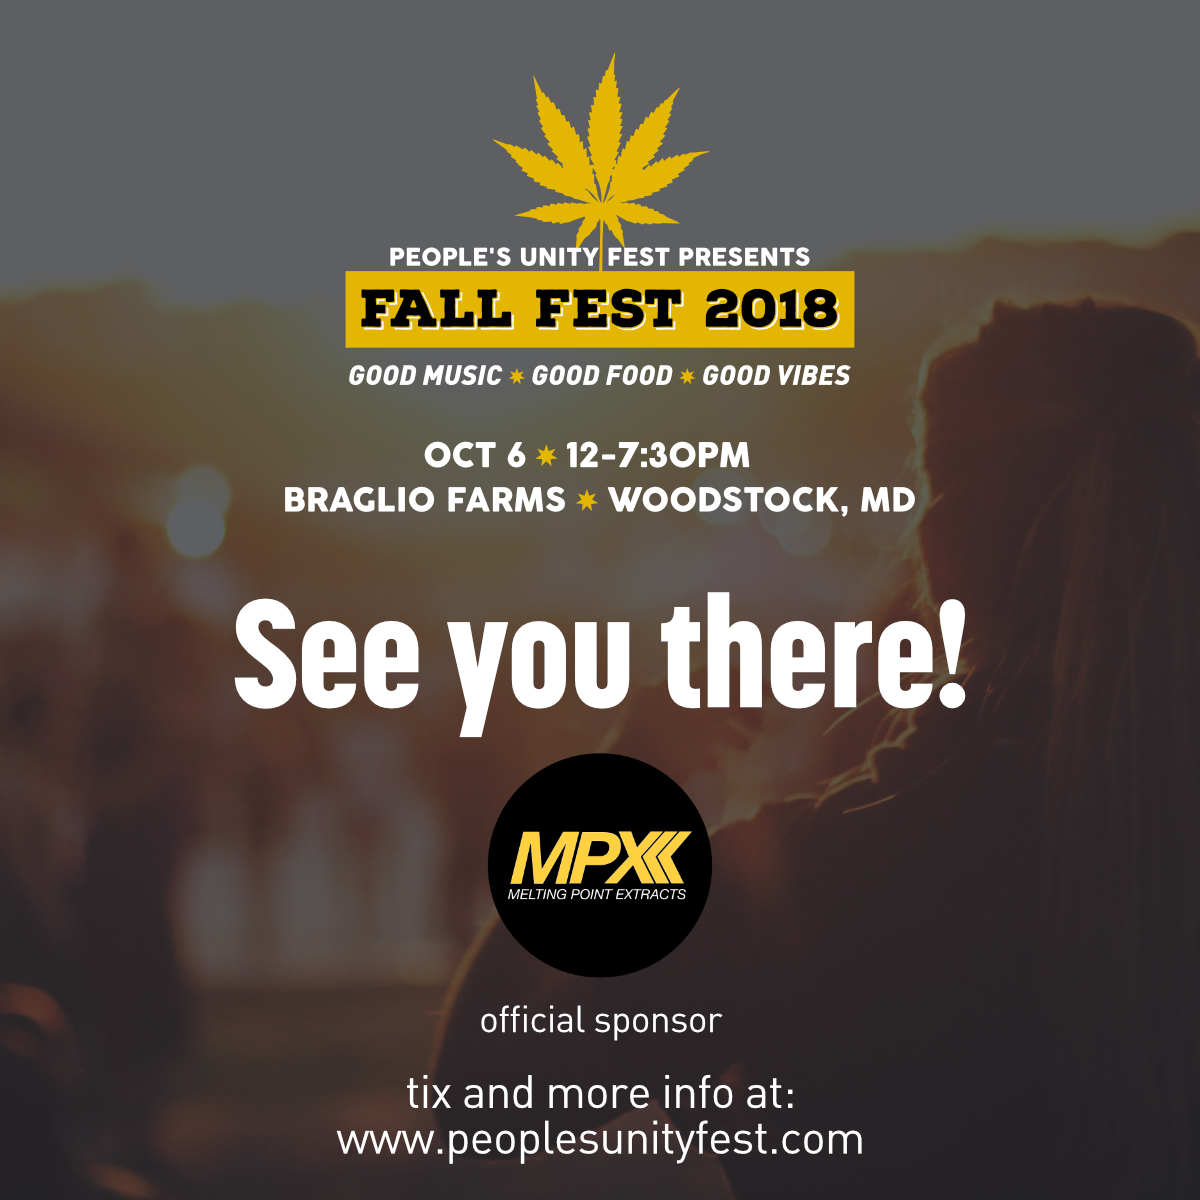 PUF2018-MPX.png